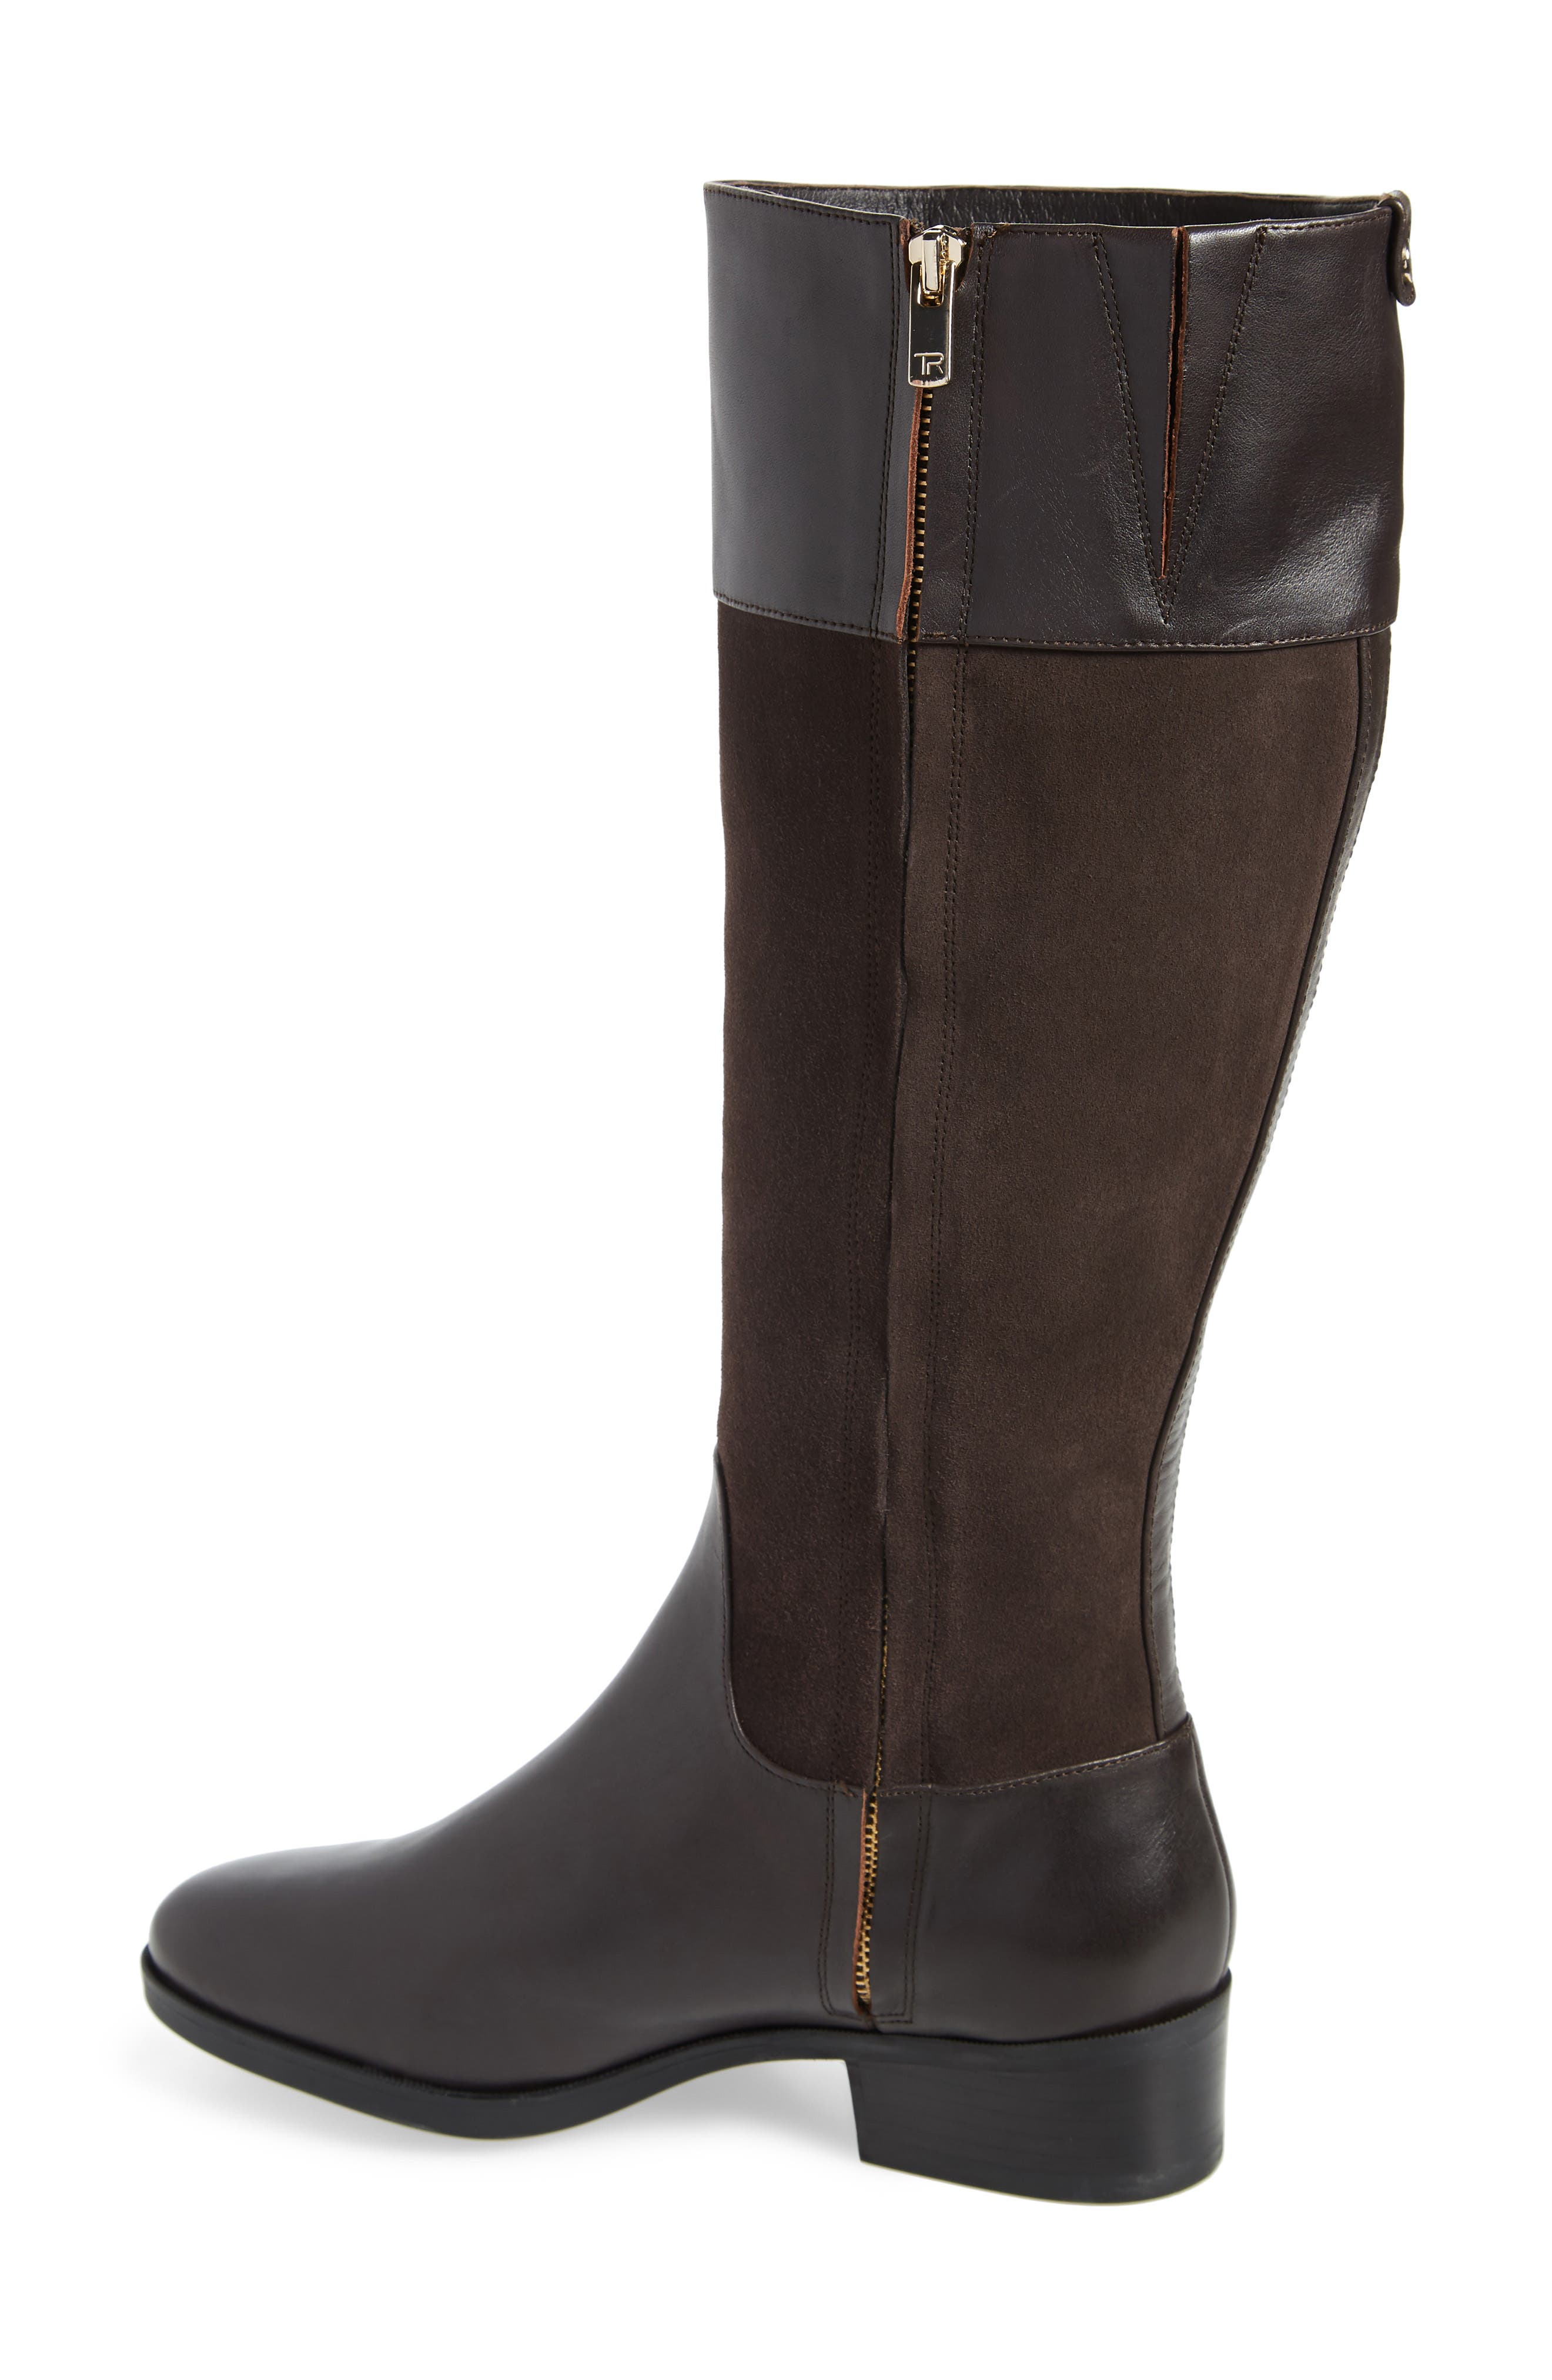 TARYN ROSE,                             Georgia Water Resistant Collection Boot,                             Alternate thumbnail 2, color,                             CHOCOLATE LEATHER/ SUEDE